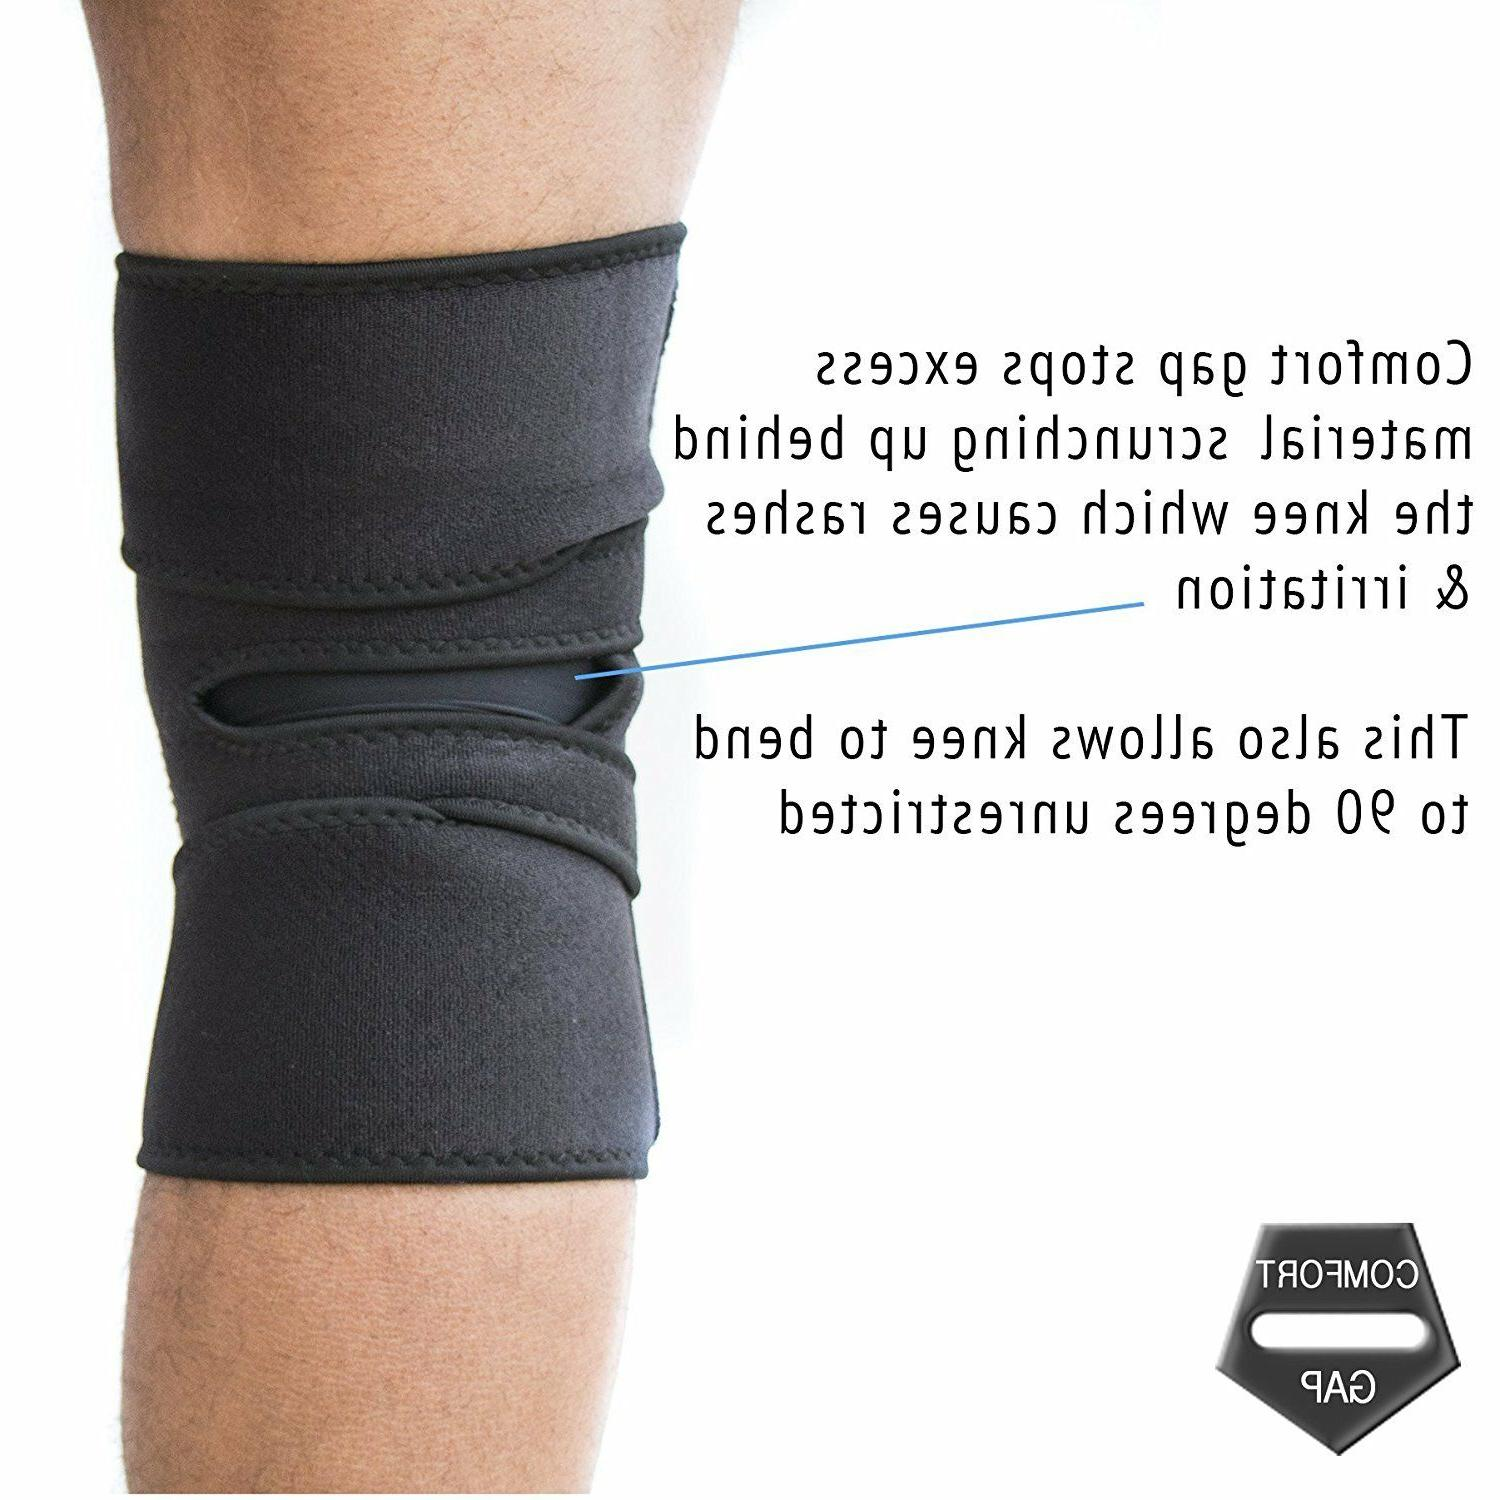 EXOUS Bodygear Brace Support Relieves Tendonitis Helps ACLLCL Liga